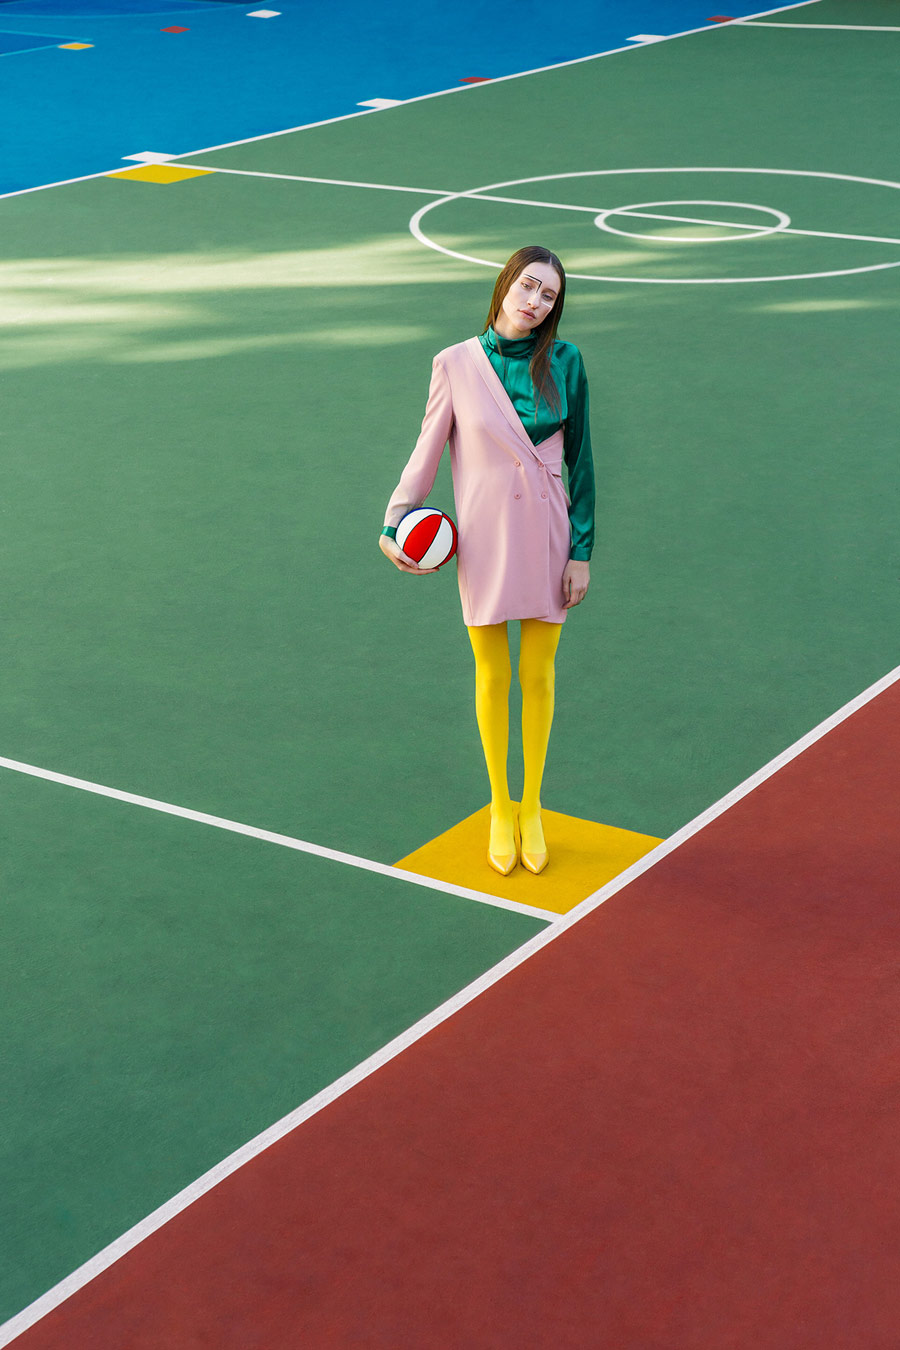 Dazed Delusions, © Gabriel Isak, Huskvarna, Sweden, Editorial/Celebrity Category, PDN The Look - Fashion Photography Competition